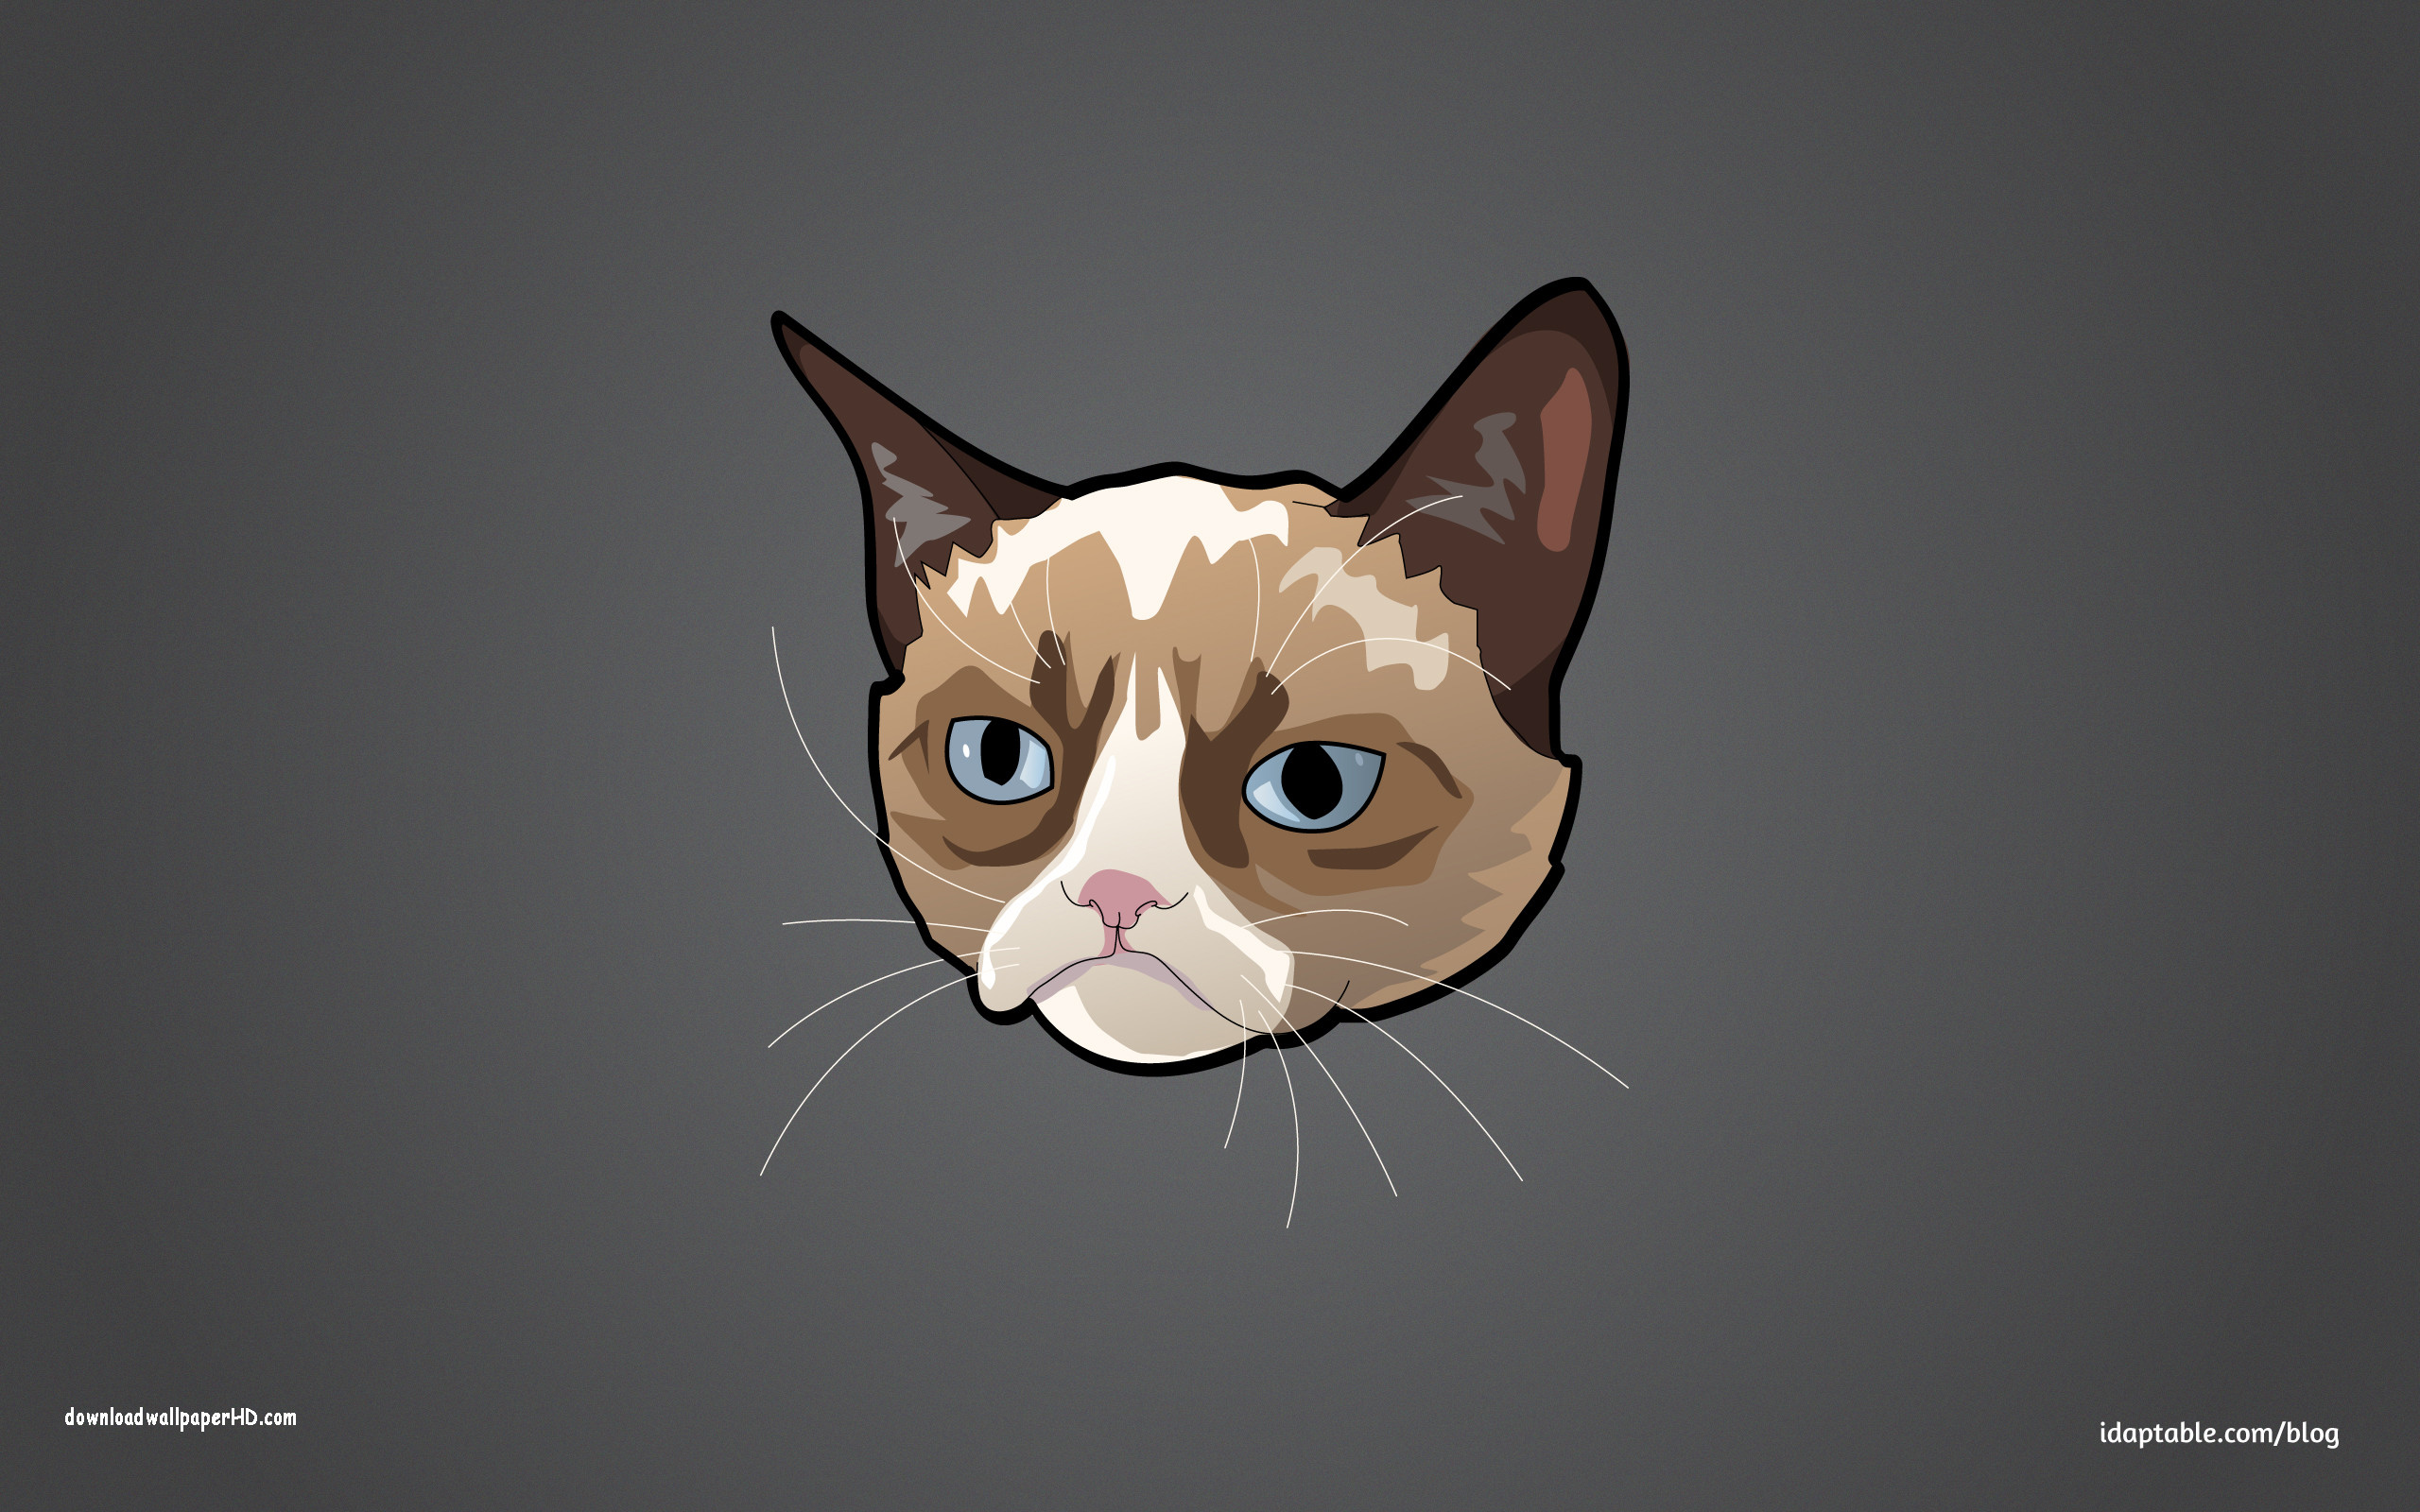 Grumpy cat wallpapers hd 61 images - Cat wallpaper cartoon ...